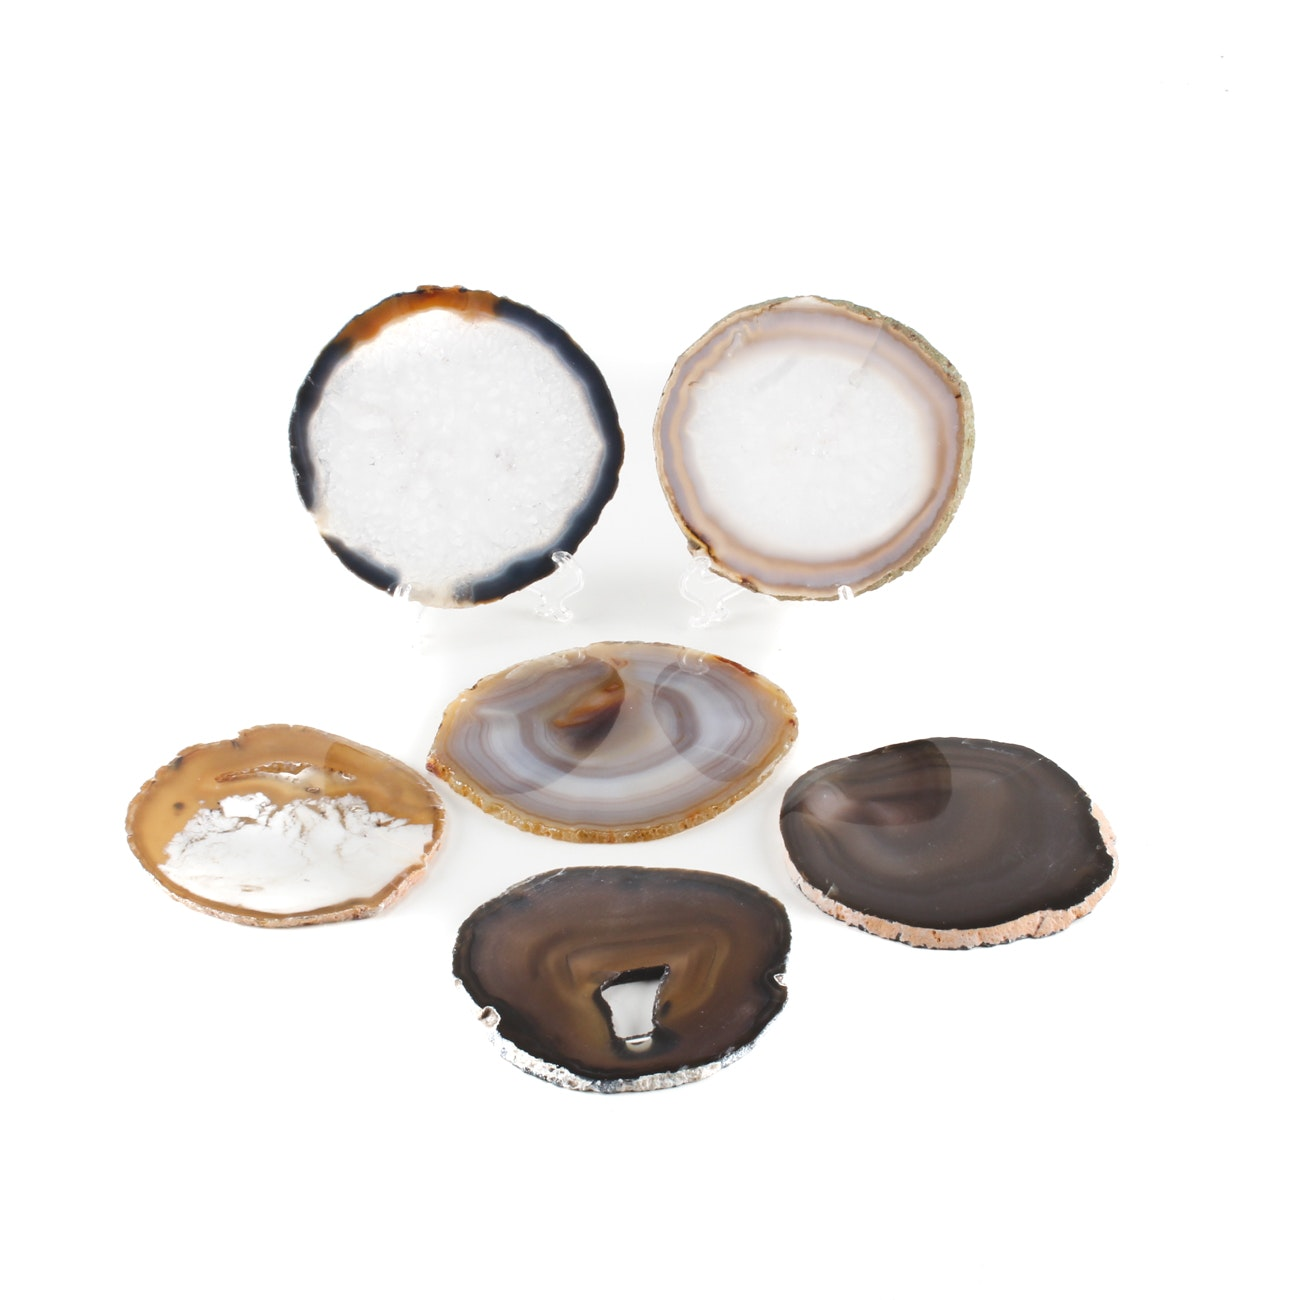 Collection of Six Agate and Quartz Geode Cross-Sections